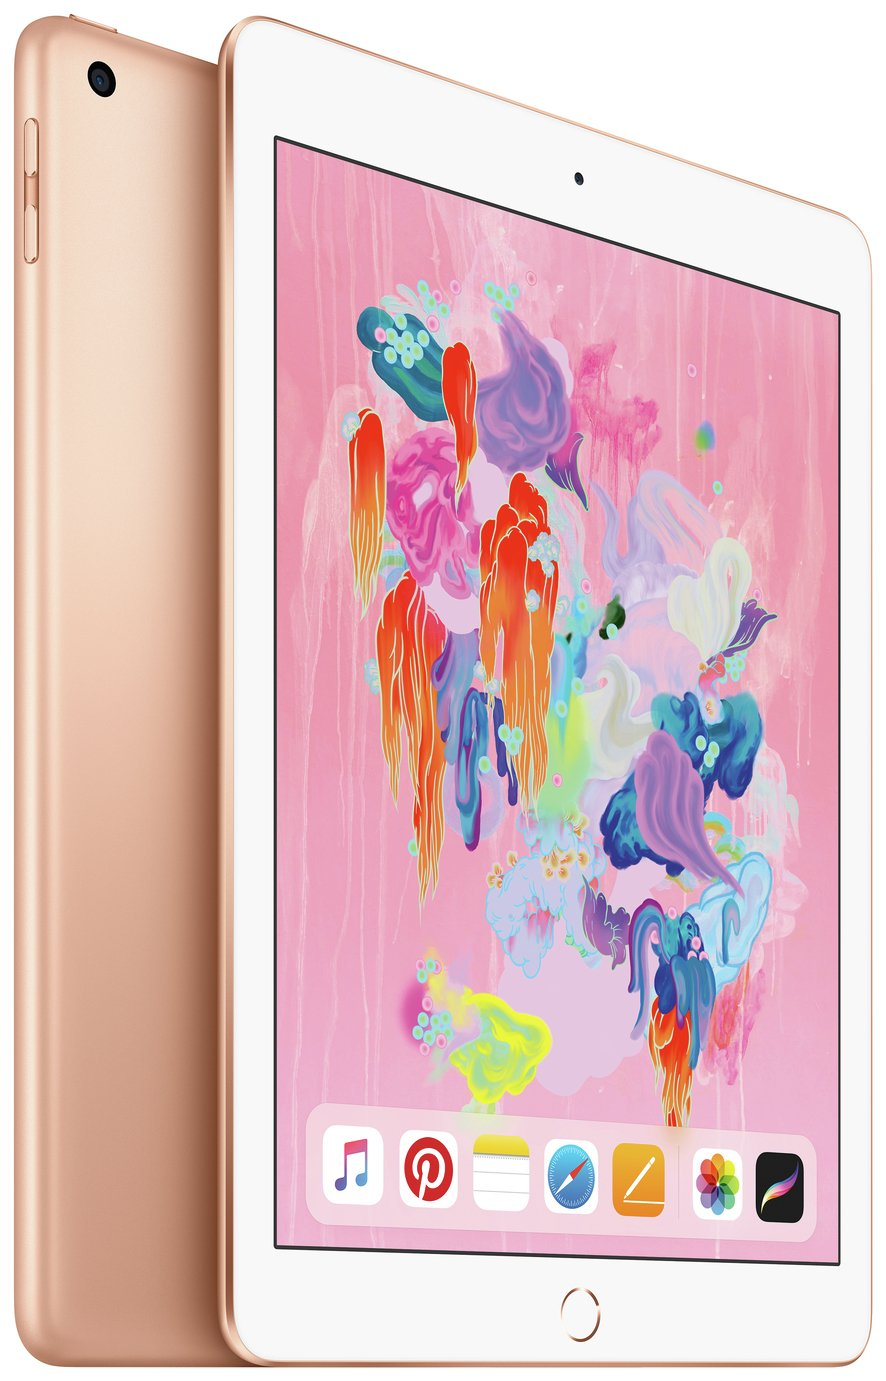 iPad 2018 6th Gen 9.7 Inch Wi-Fi Cellular SIM 32GB – Gold